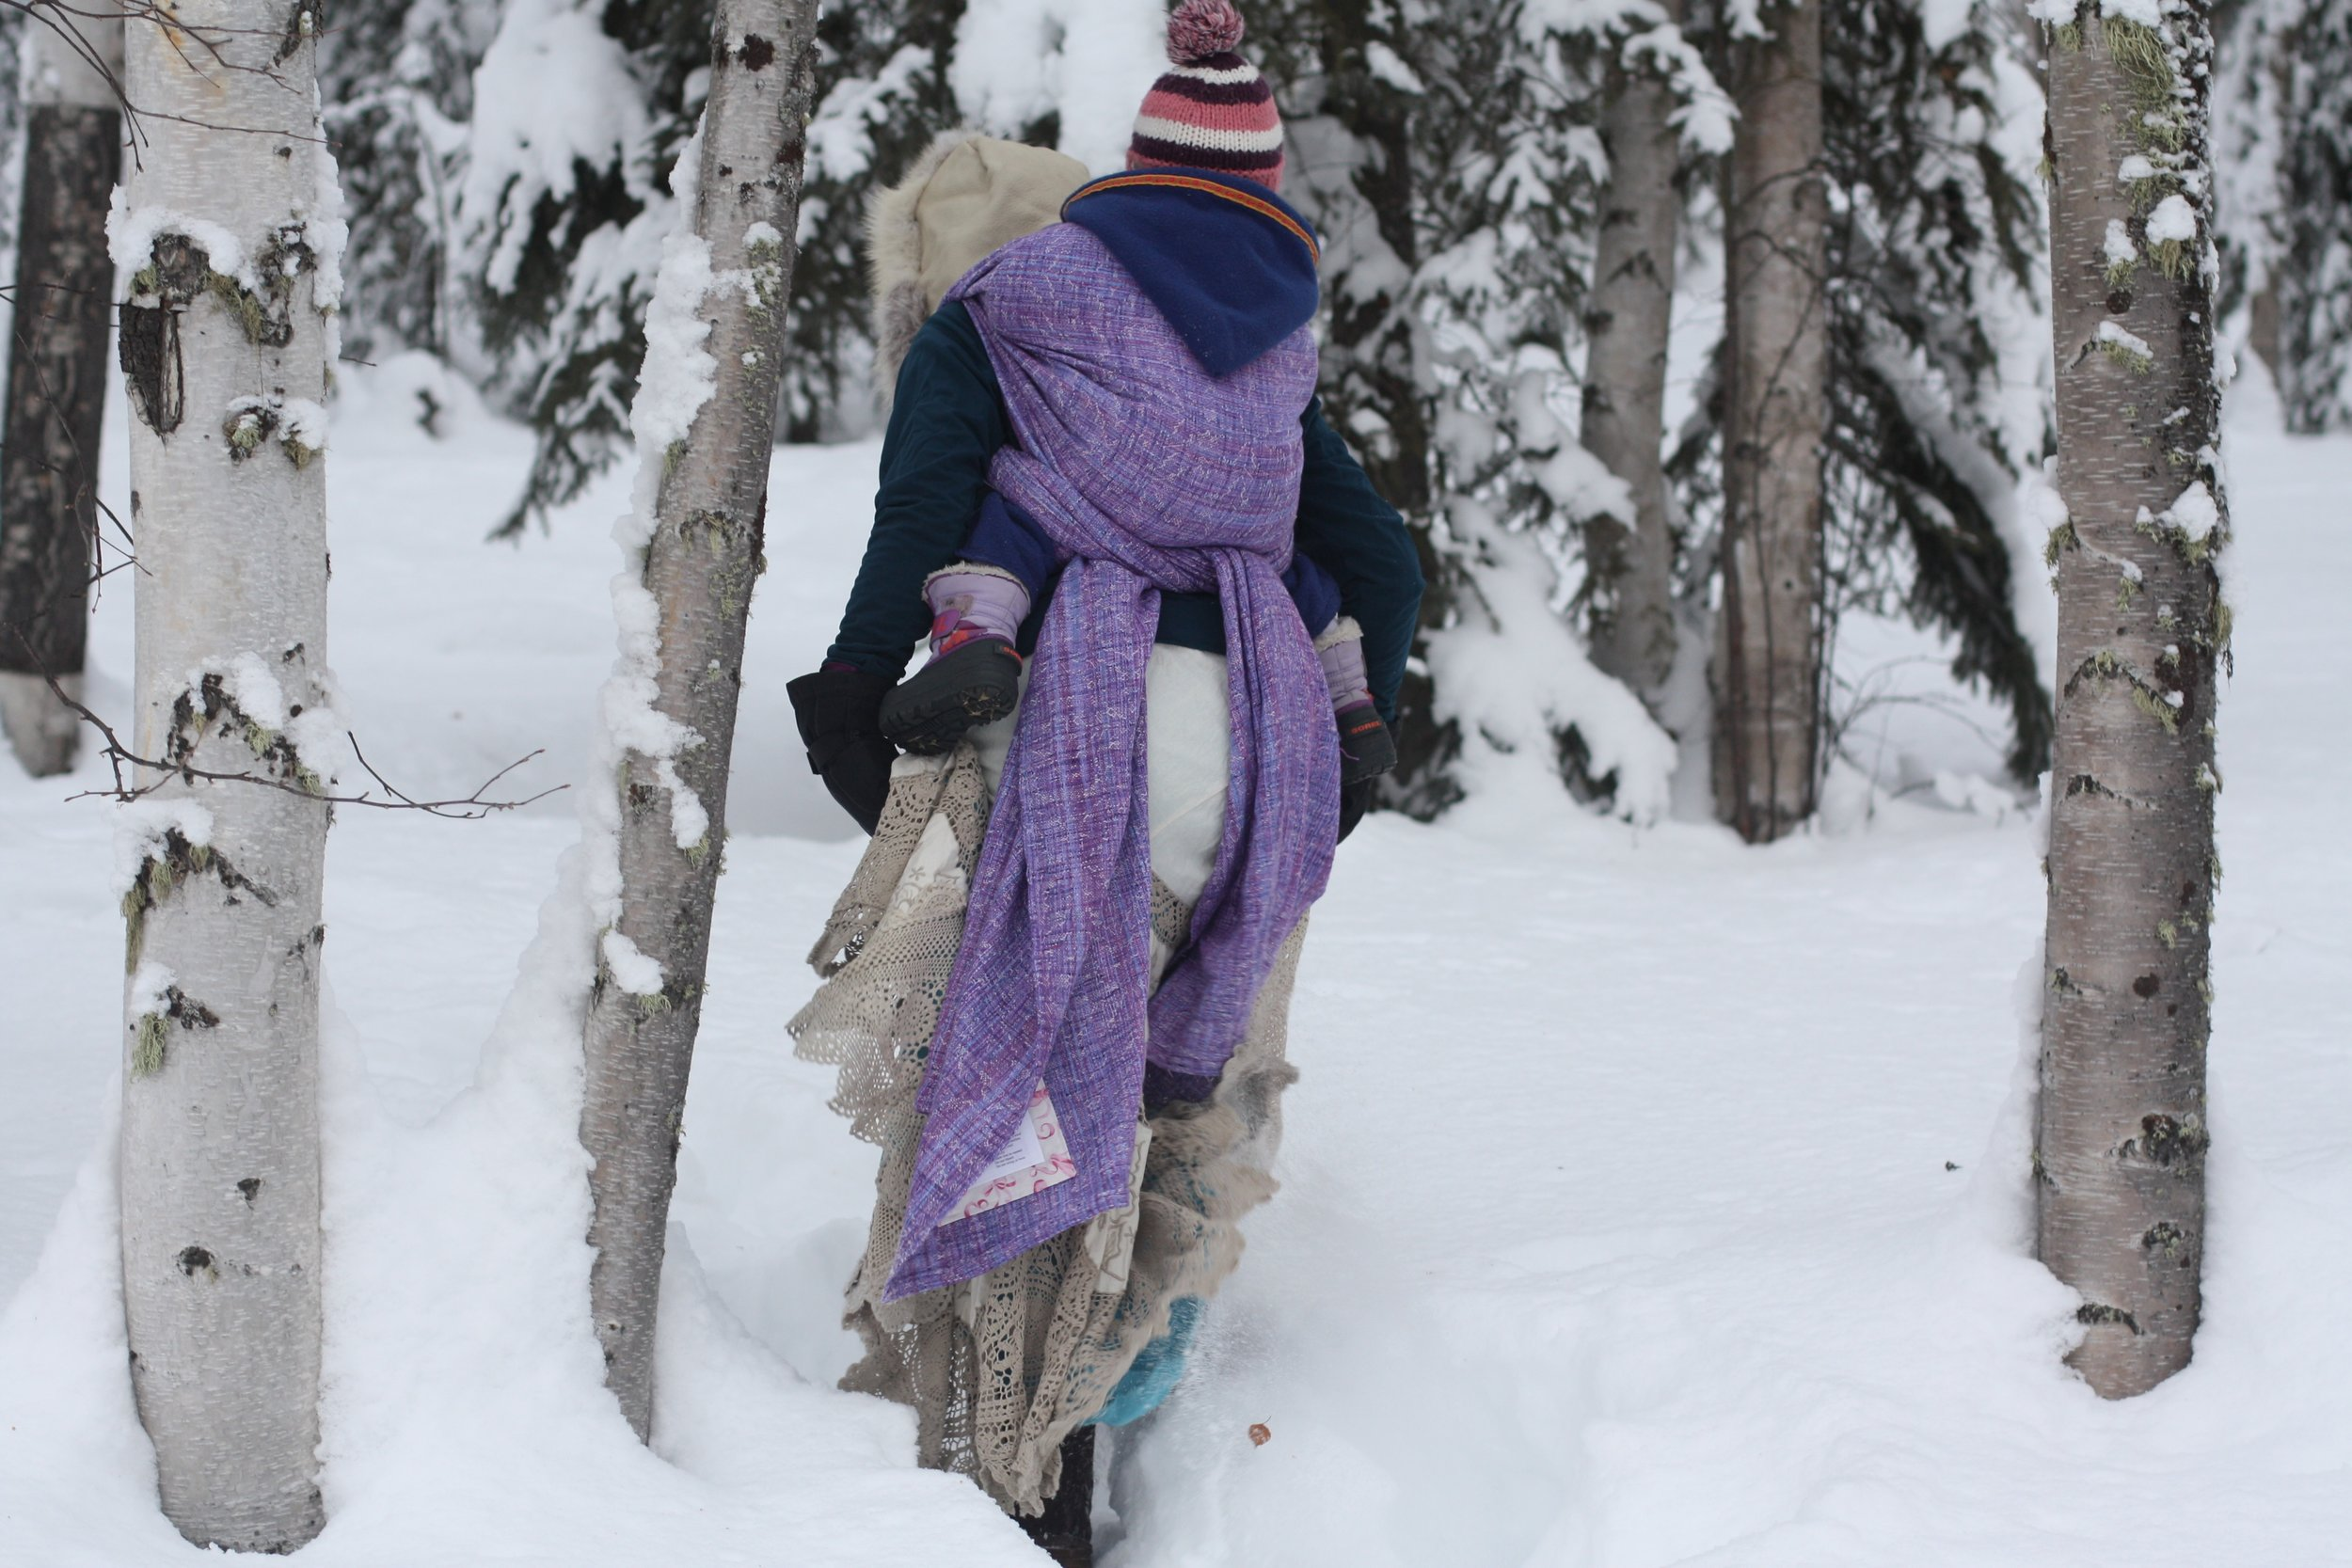 Sugar Plum Fairy goes for a walk in the winter woods | 14 Mile Farm Handweaving and Homesteading